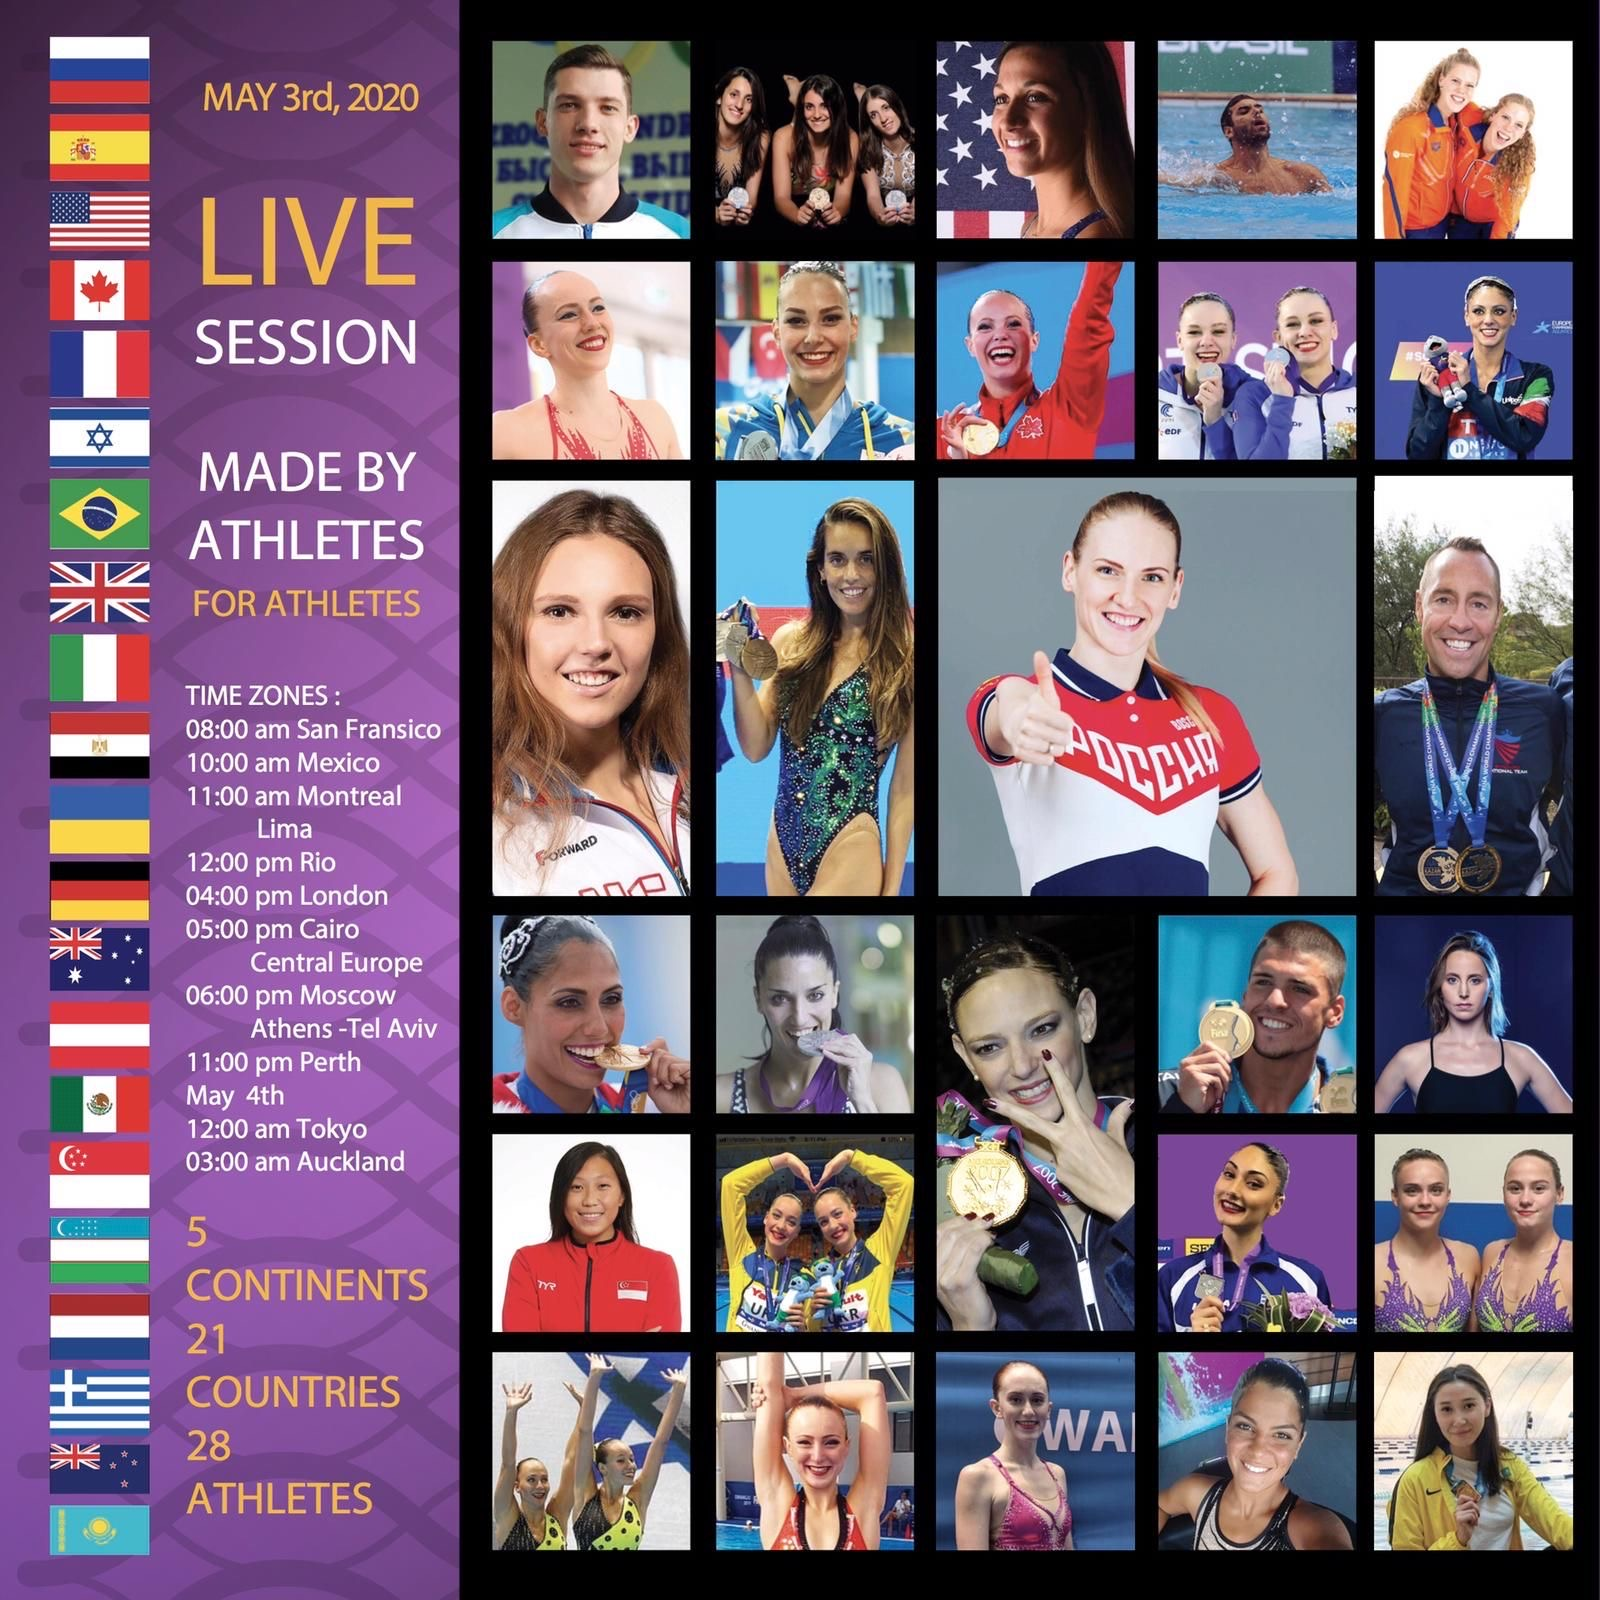 WORLDWIDE_Live_Workout_by_athletes_for_athletes mit Marelne Bojer